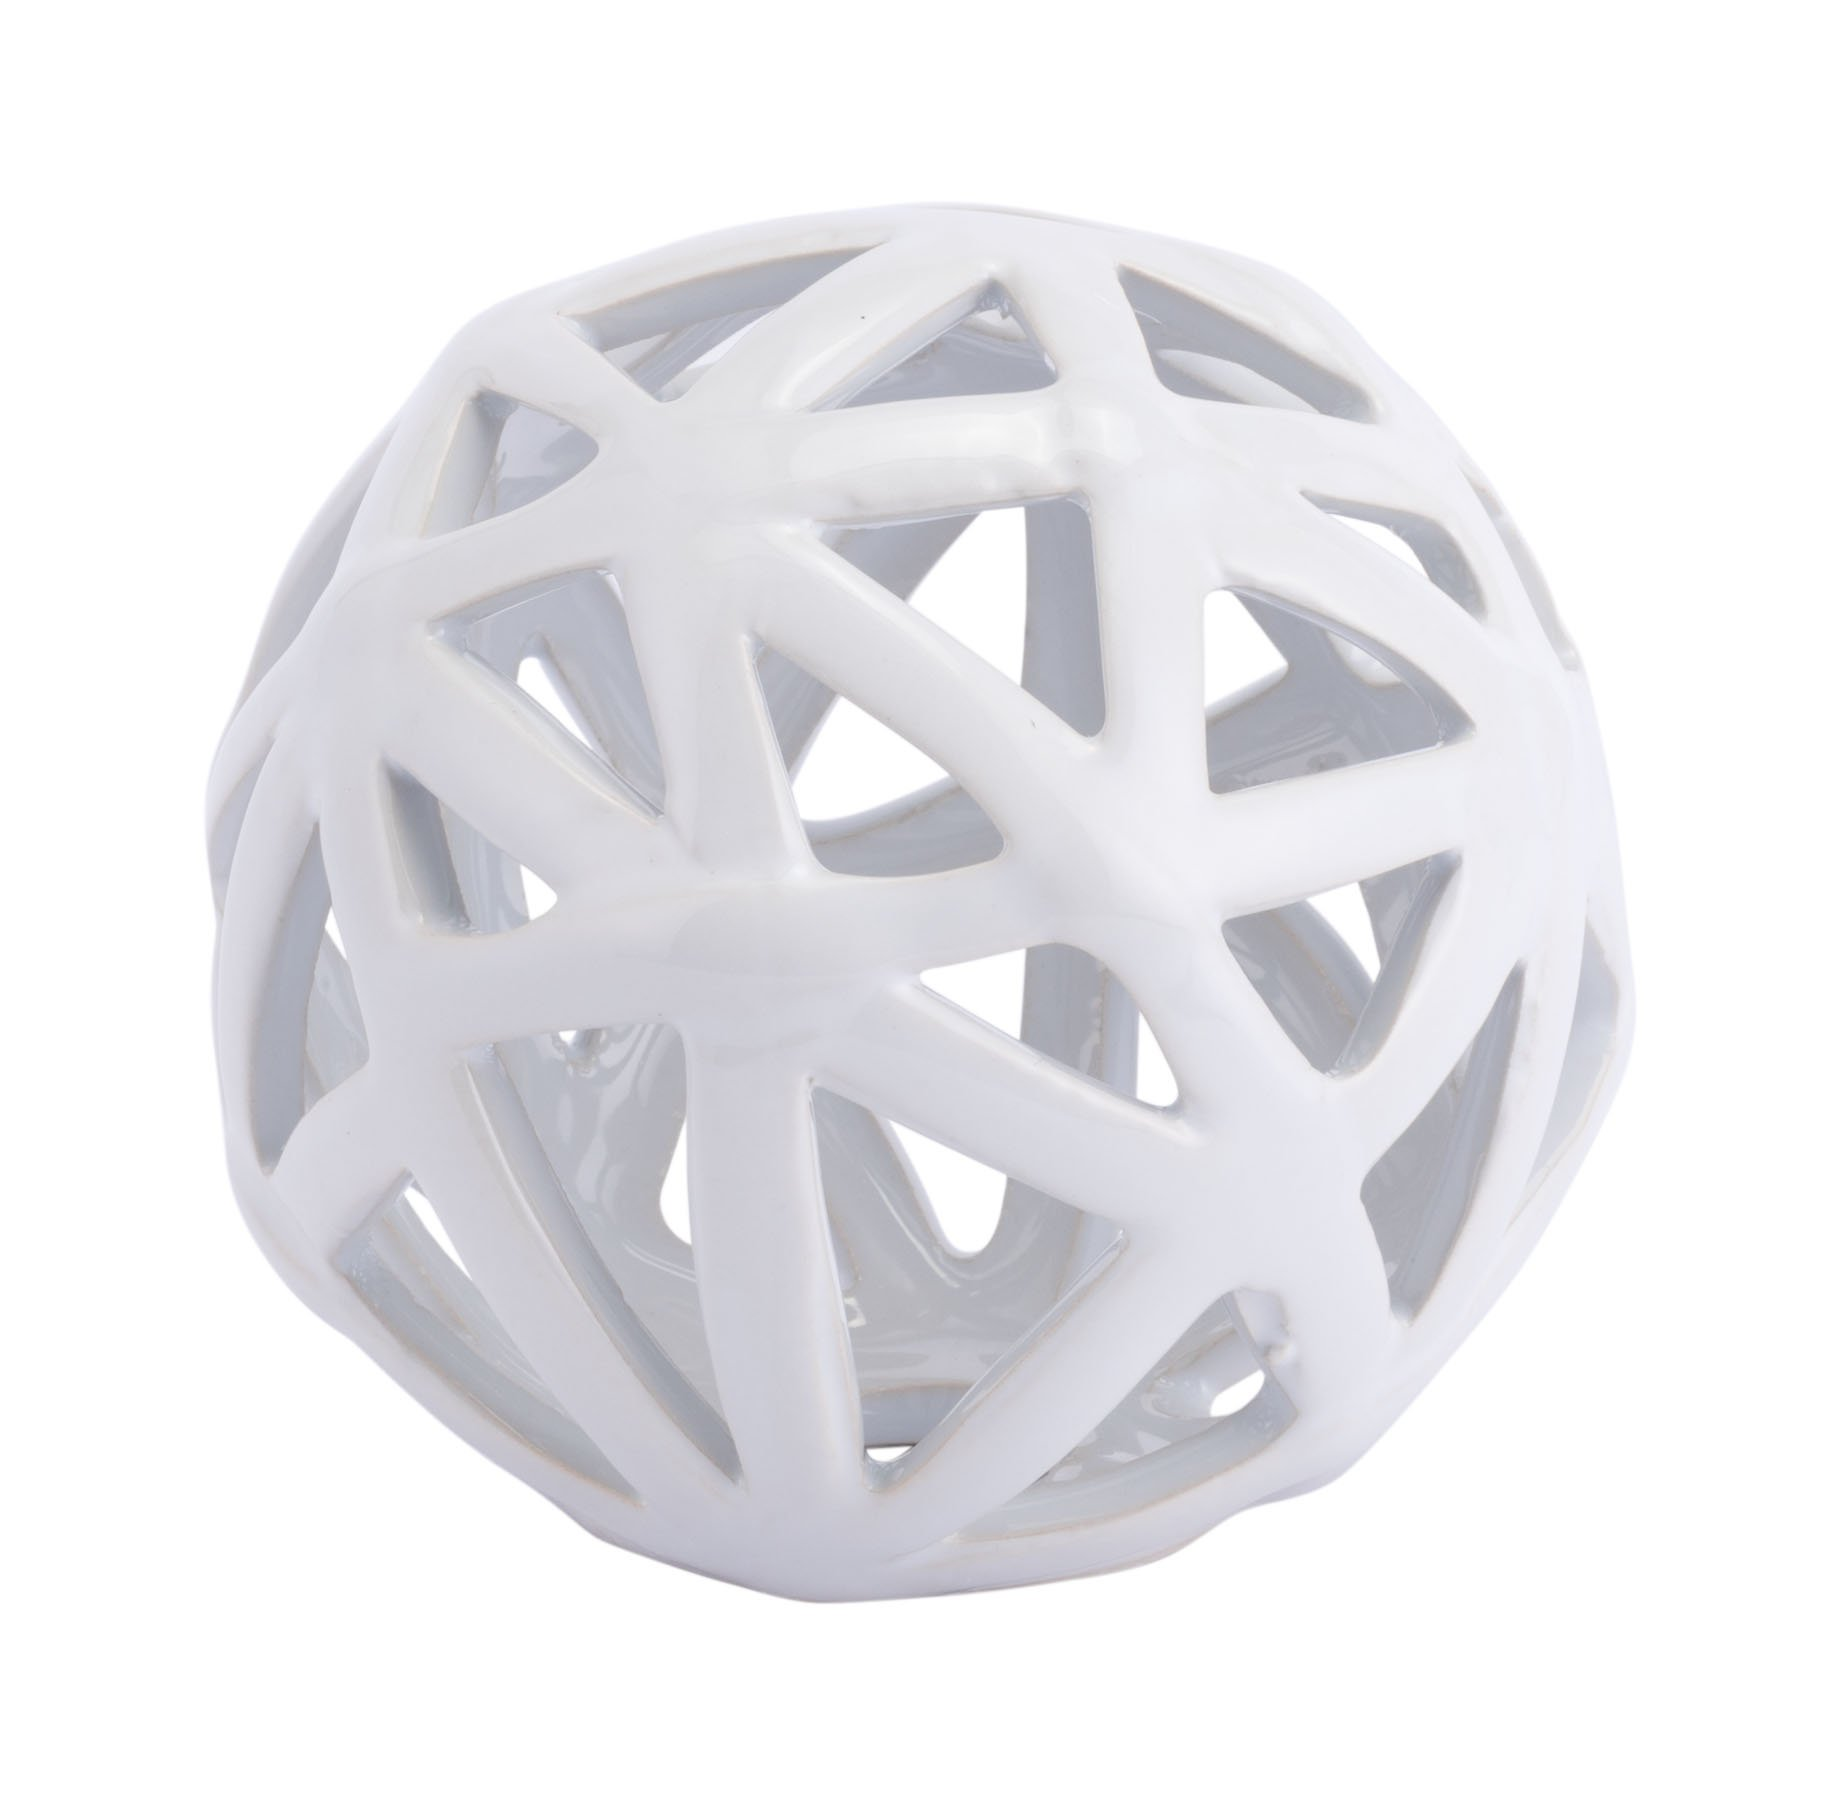 Zuo Orb Small Figurines, White by Zuo Modern